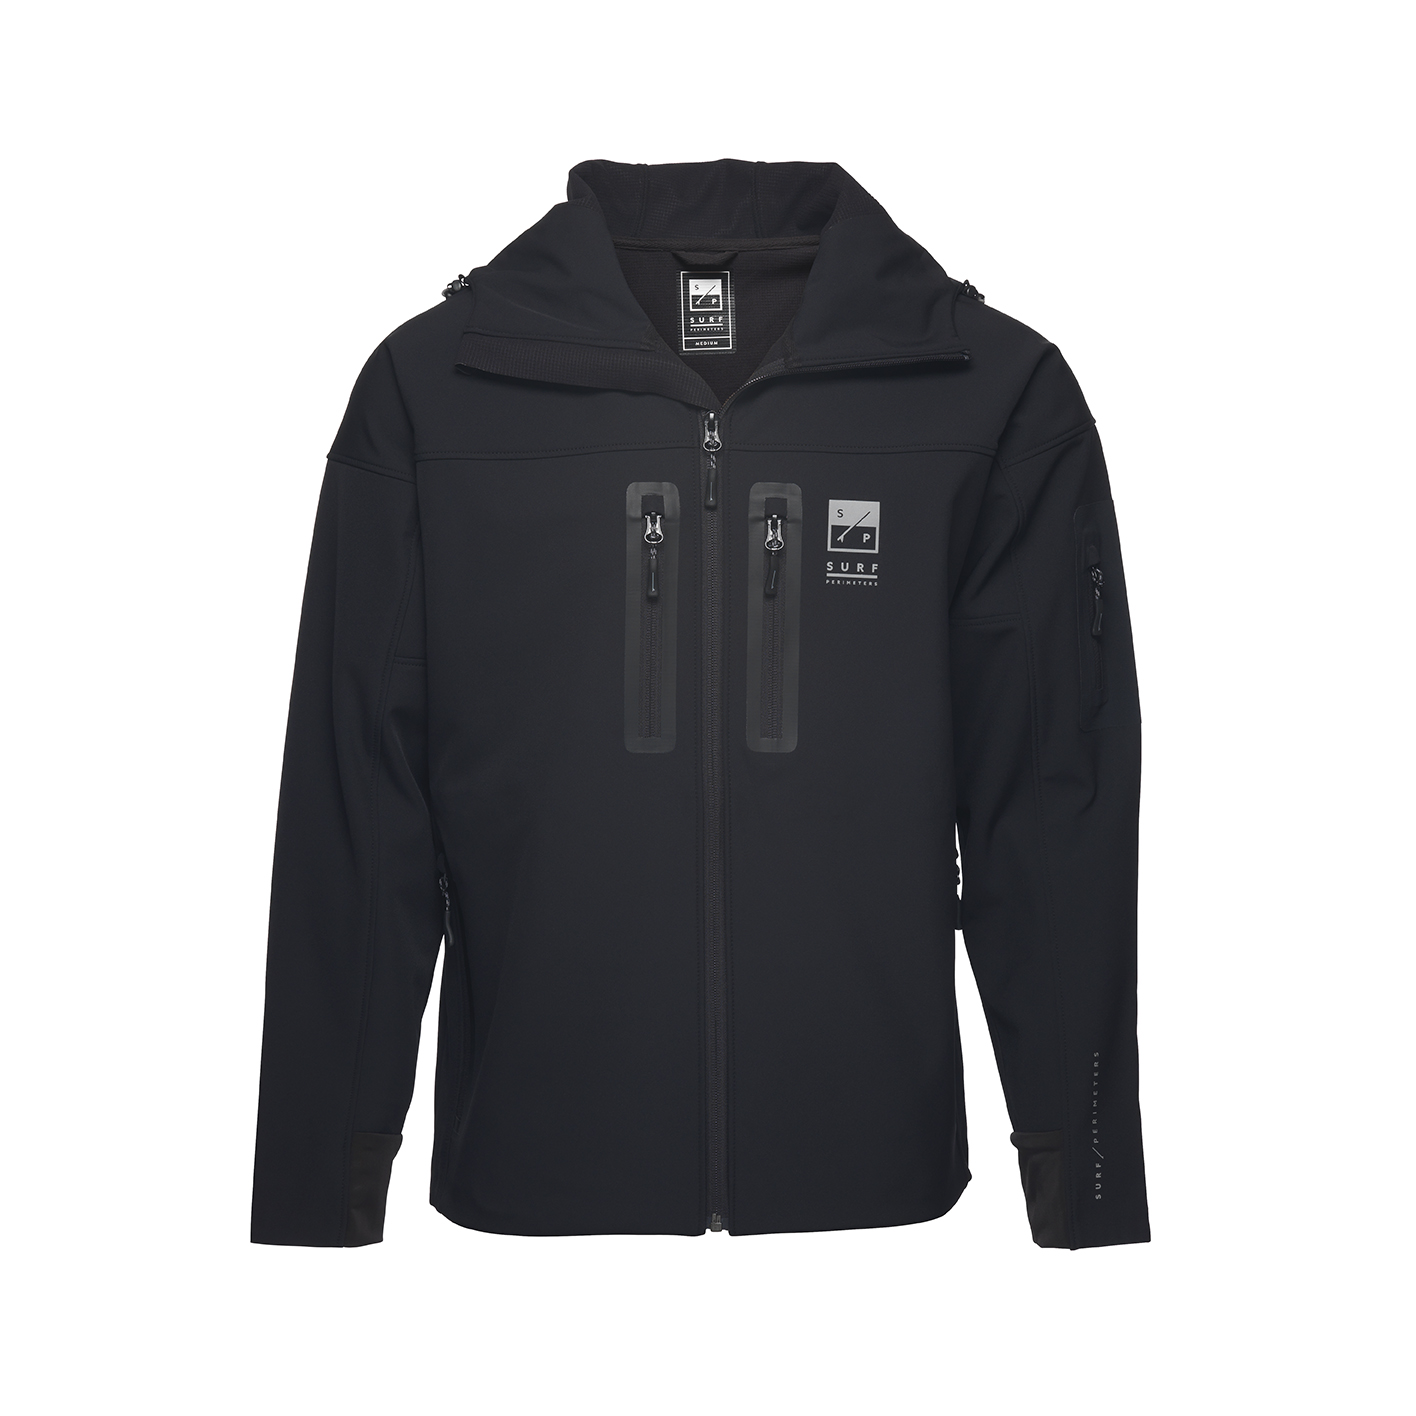 Surf Perimeters - The Stealth DBHS Softshell jacket - £250 - availiable from www.surfperimeters.com